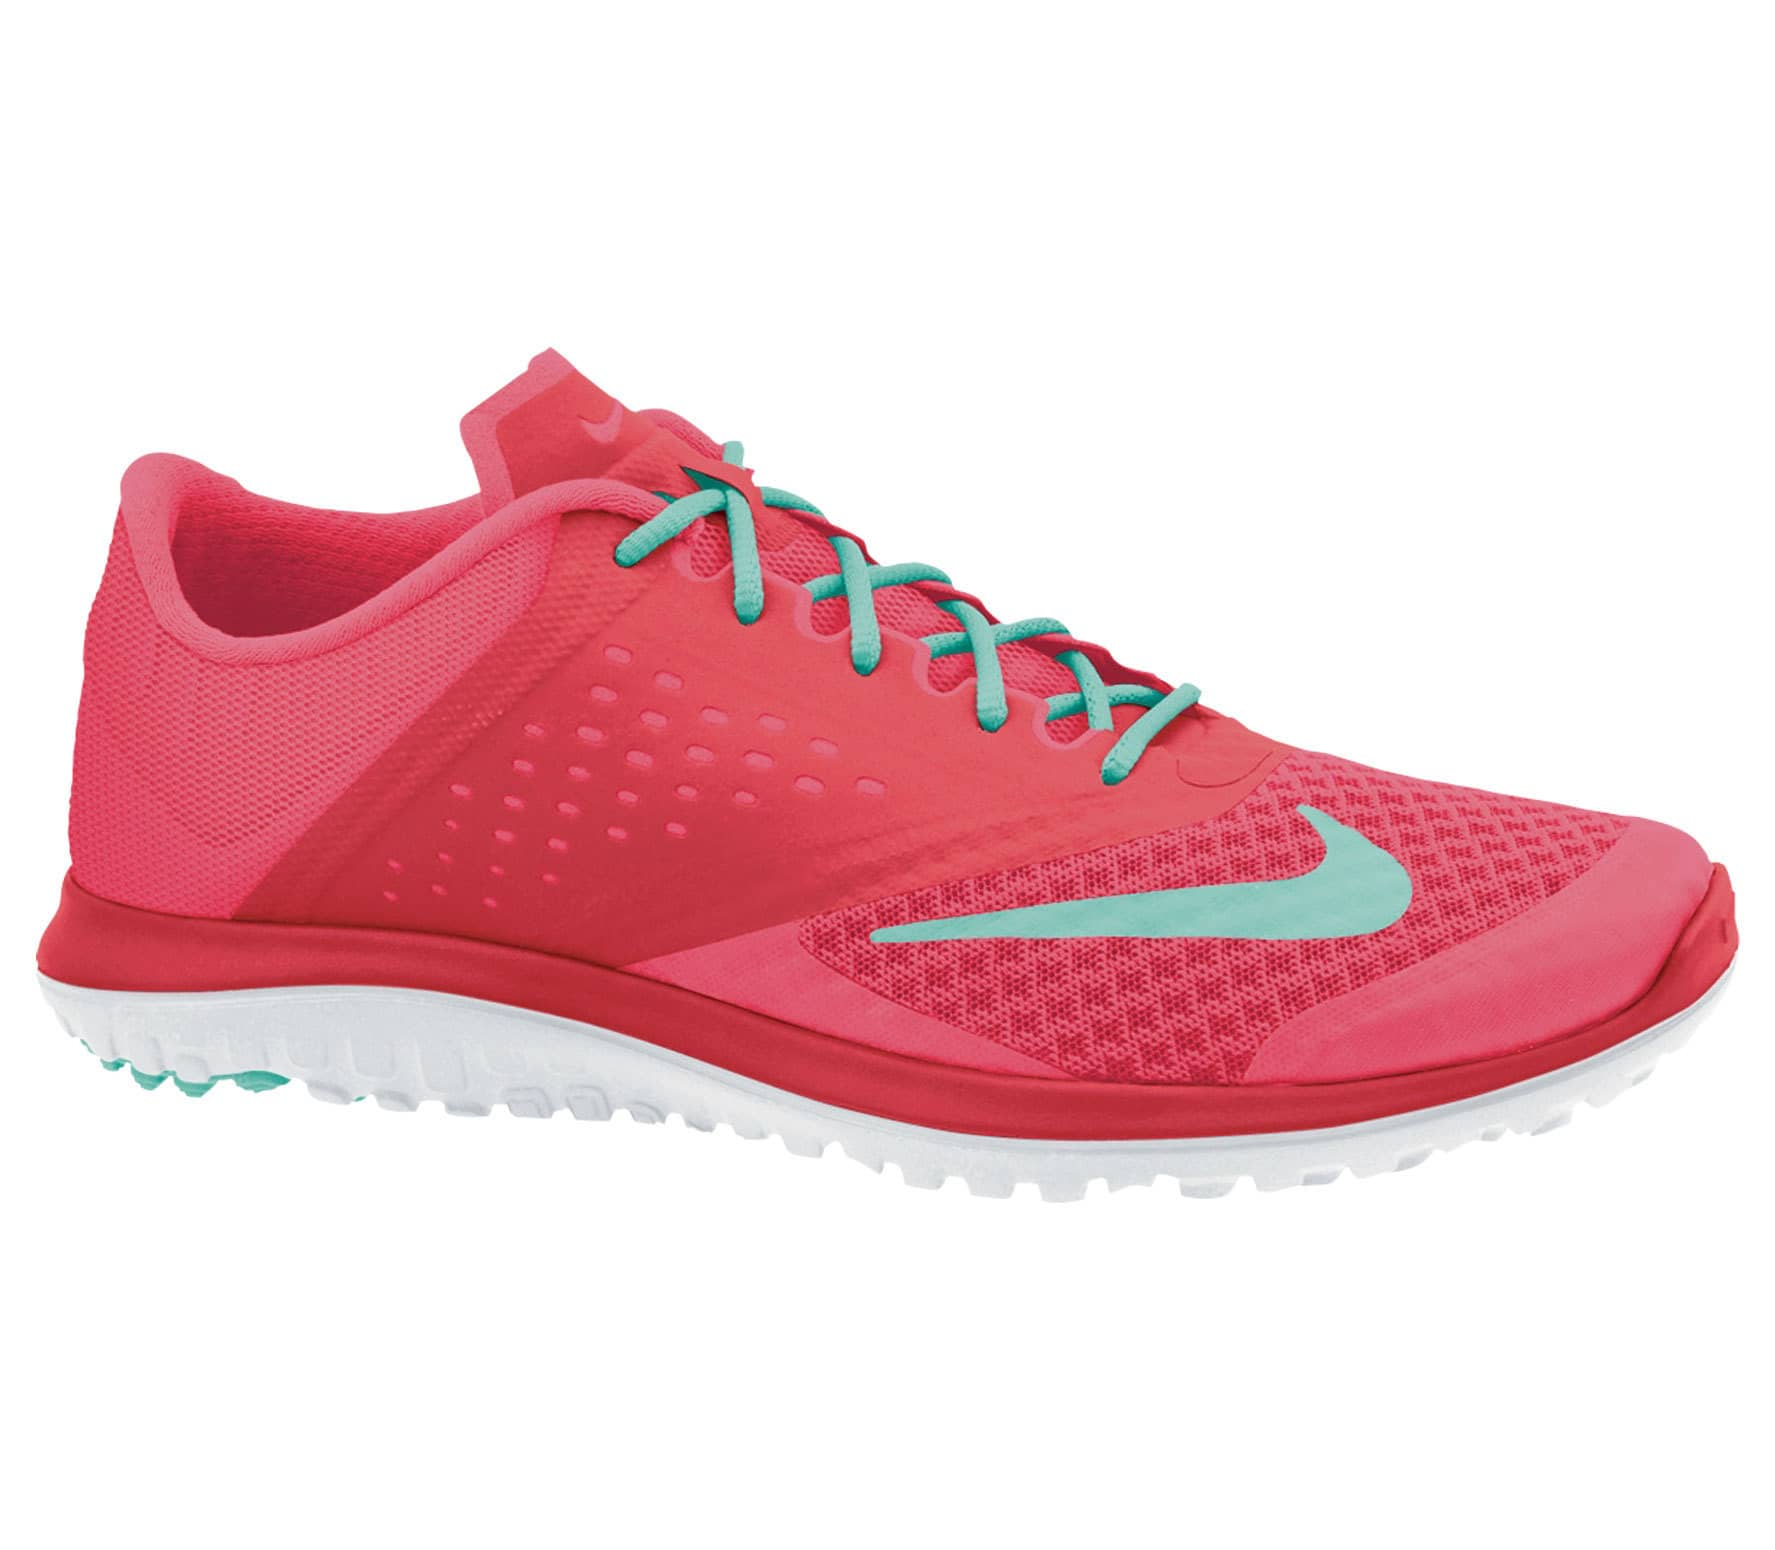 Nike Fs Lite Run  Lightweight Running Shoe